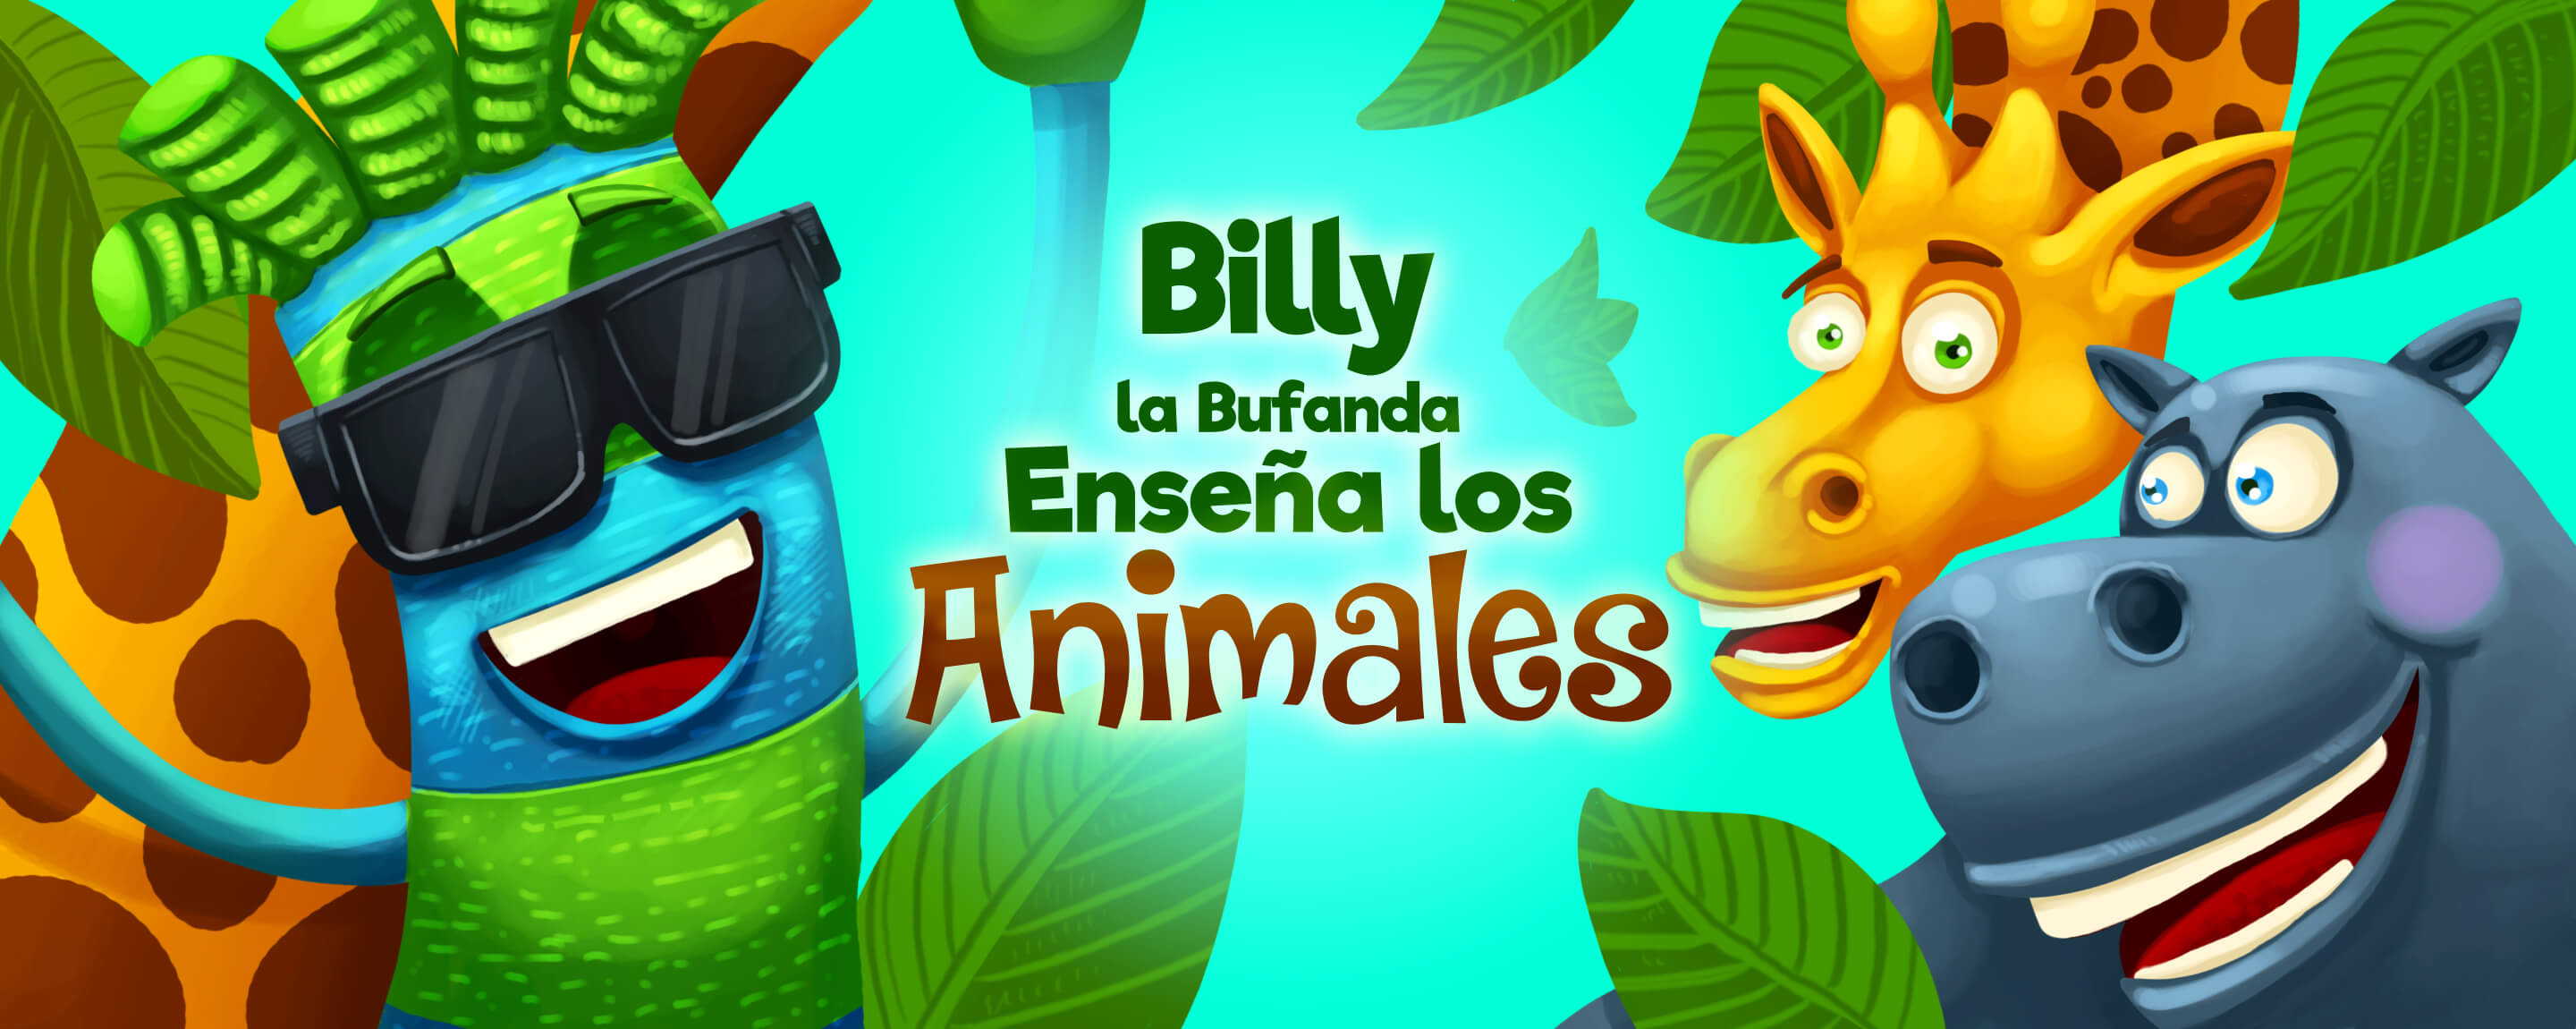 Billy la Bufanda Enseña Los Animales